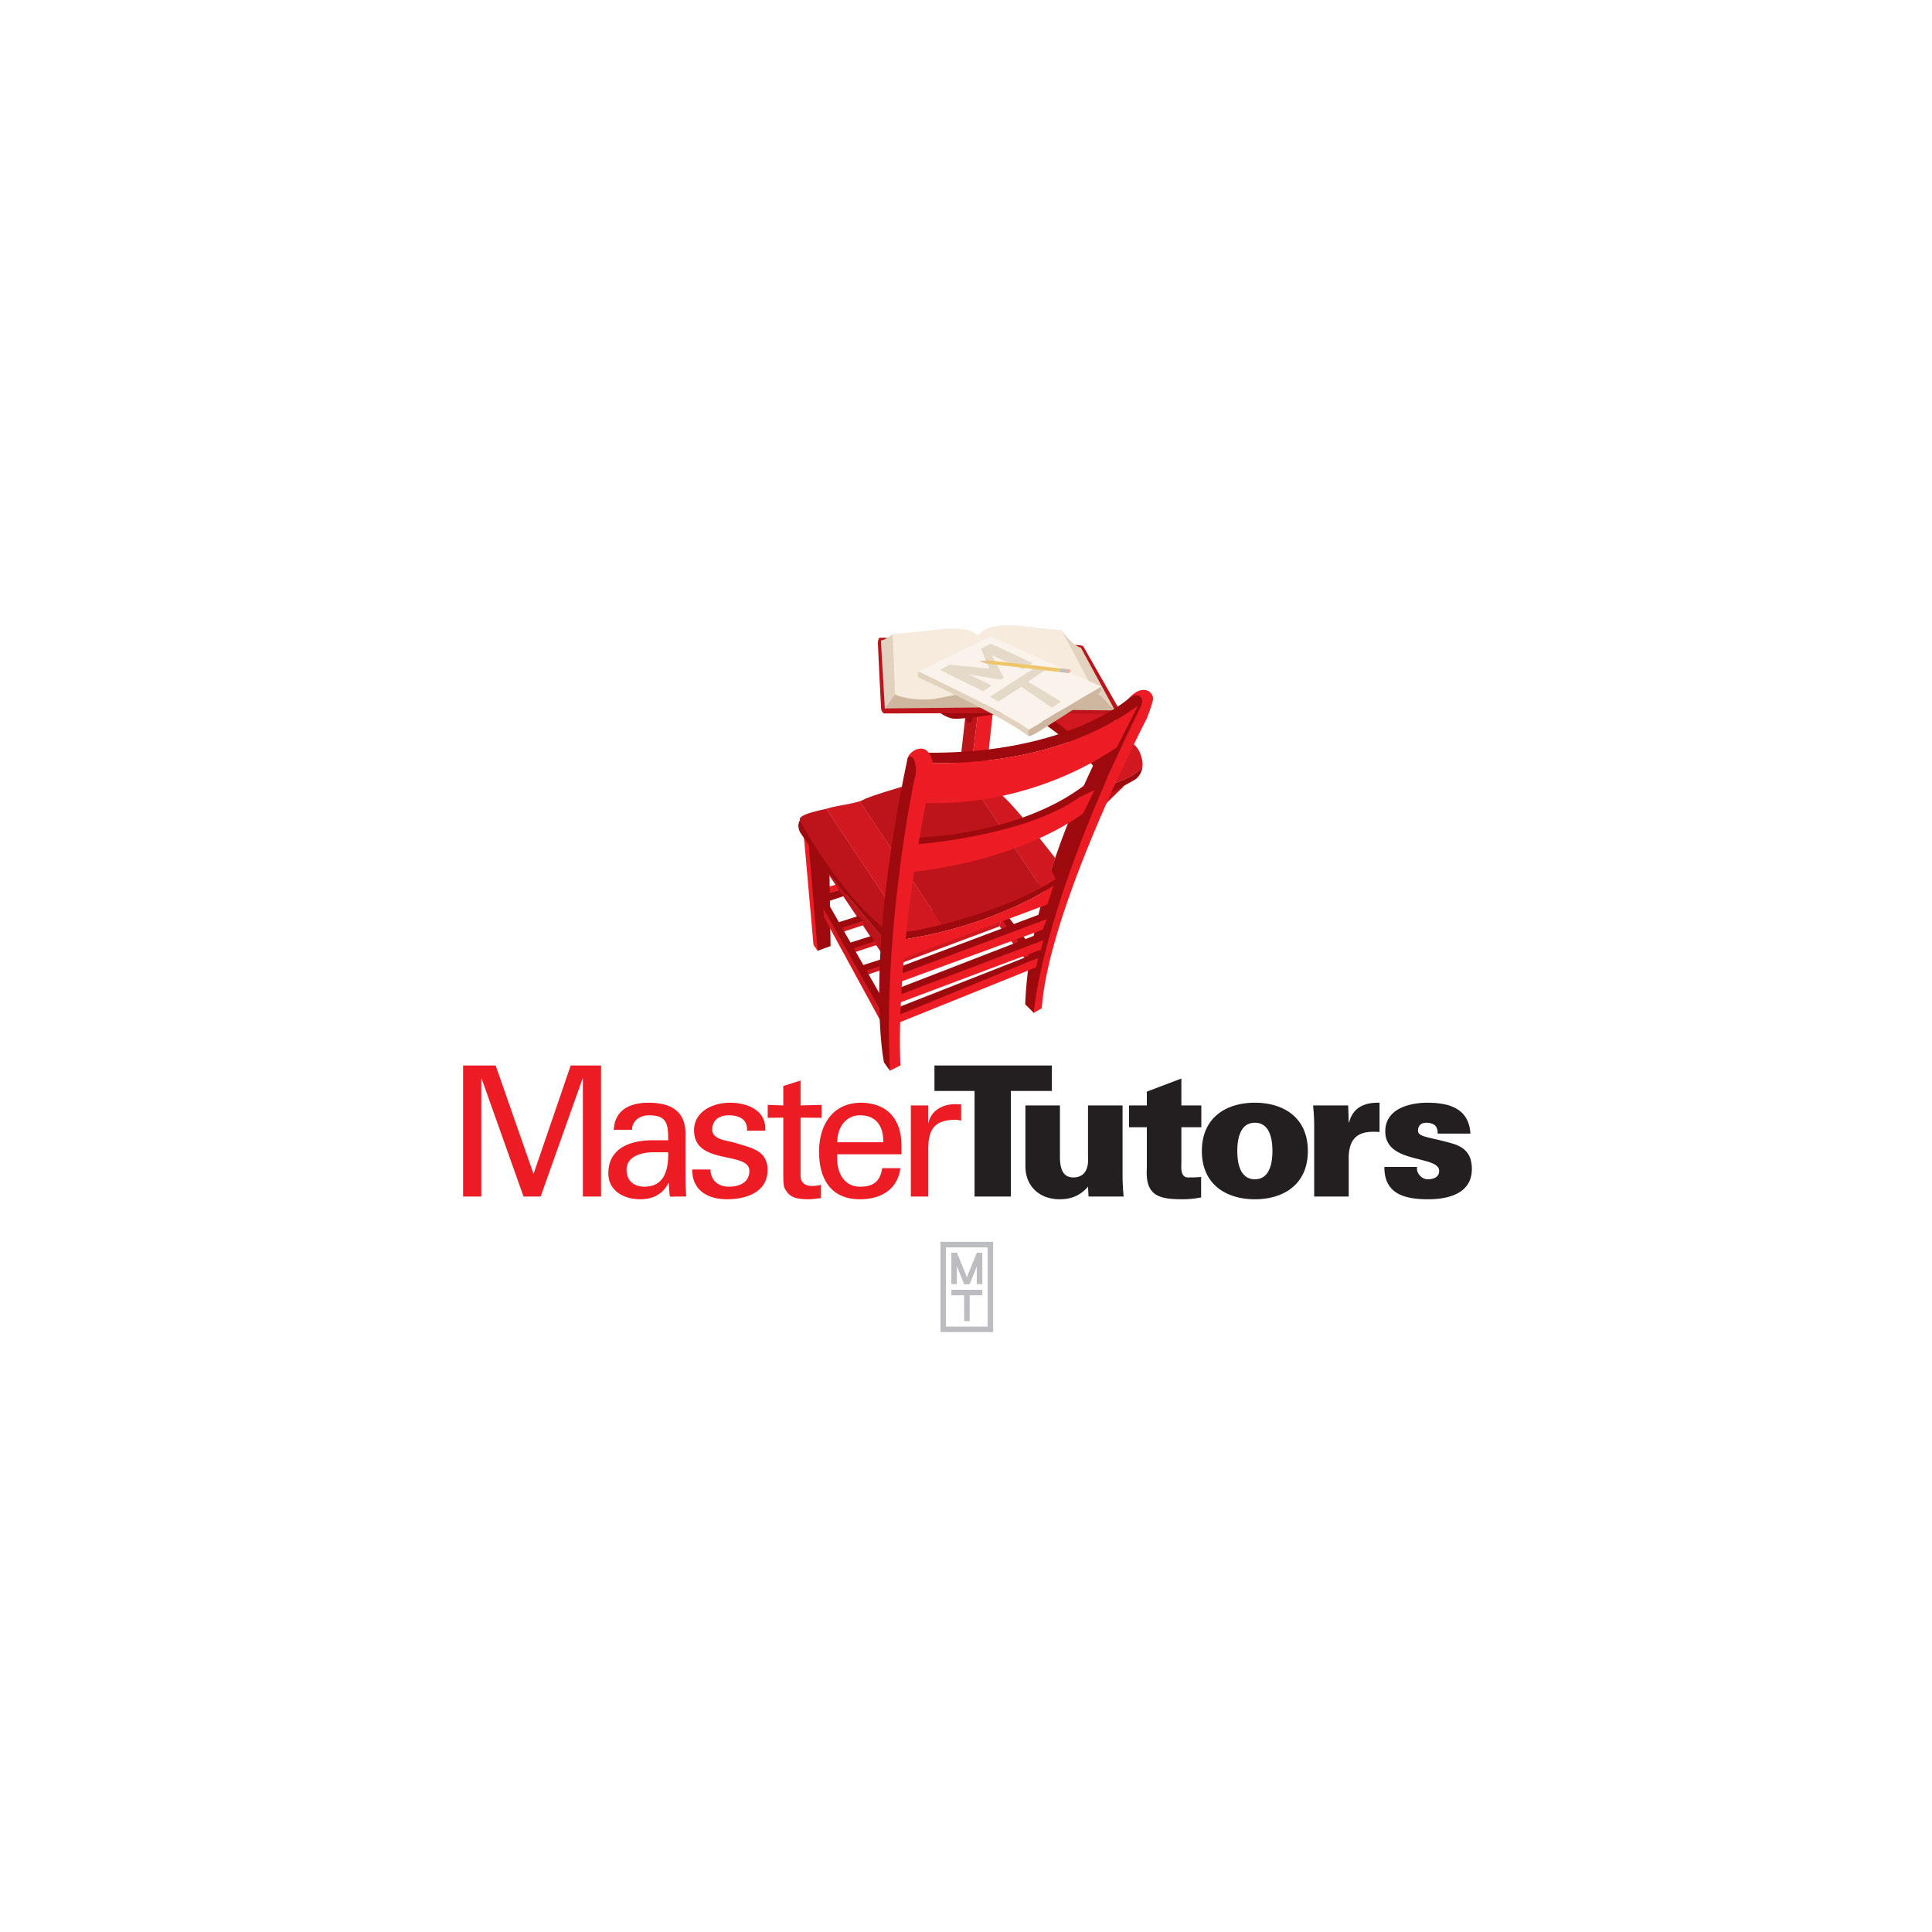 ND-mastertutors-logo.jpg